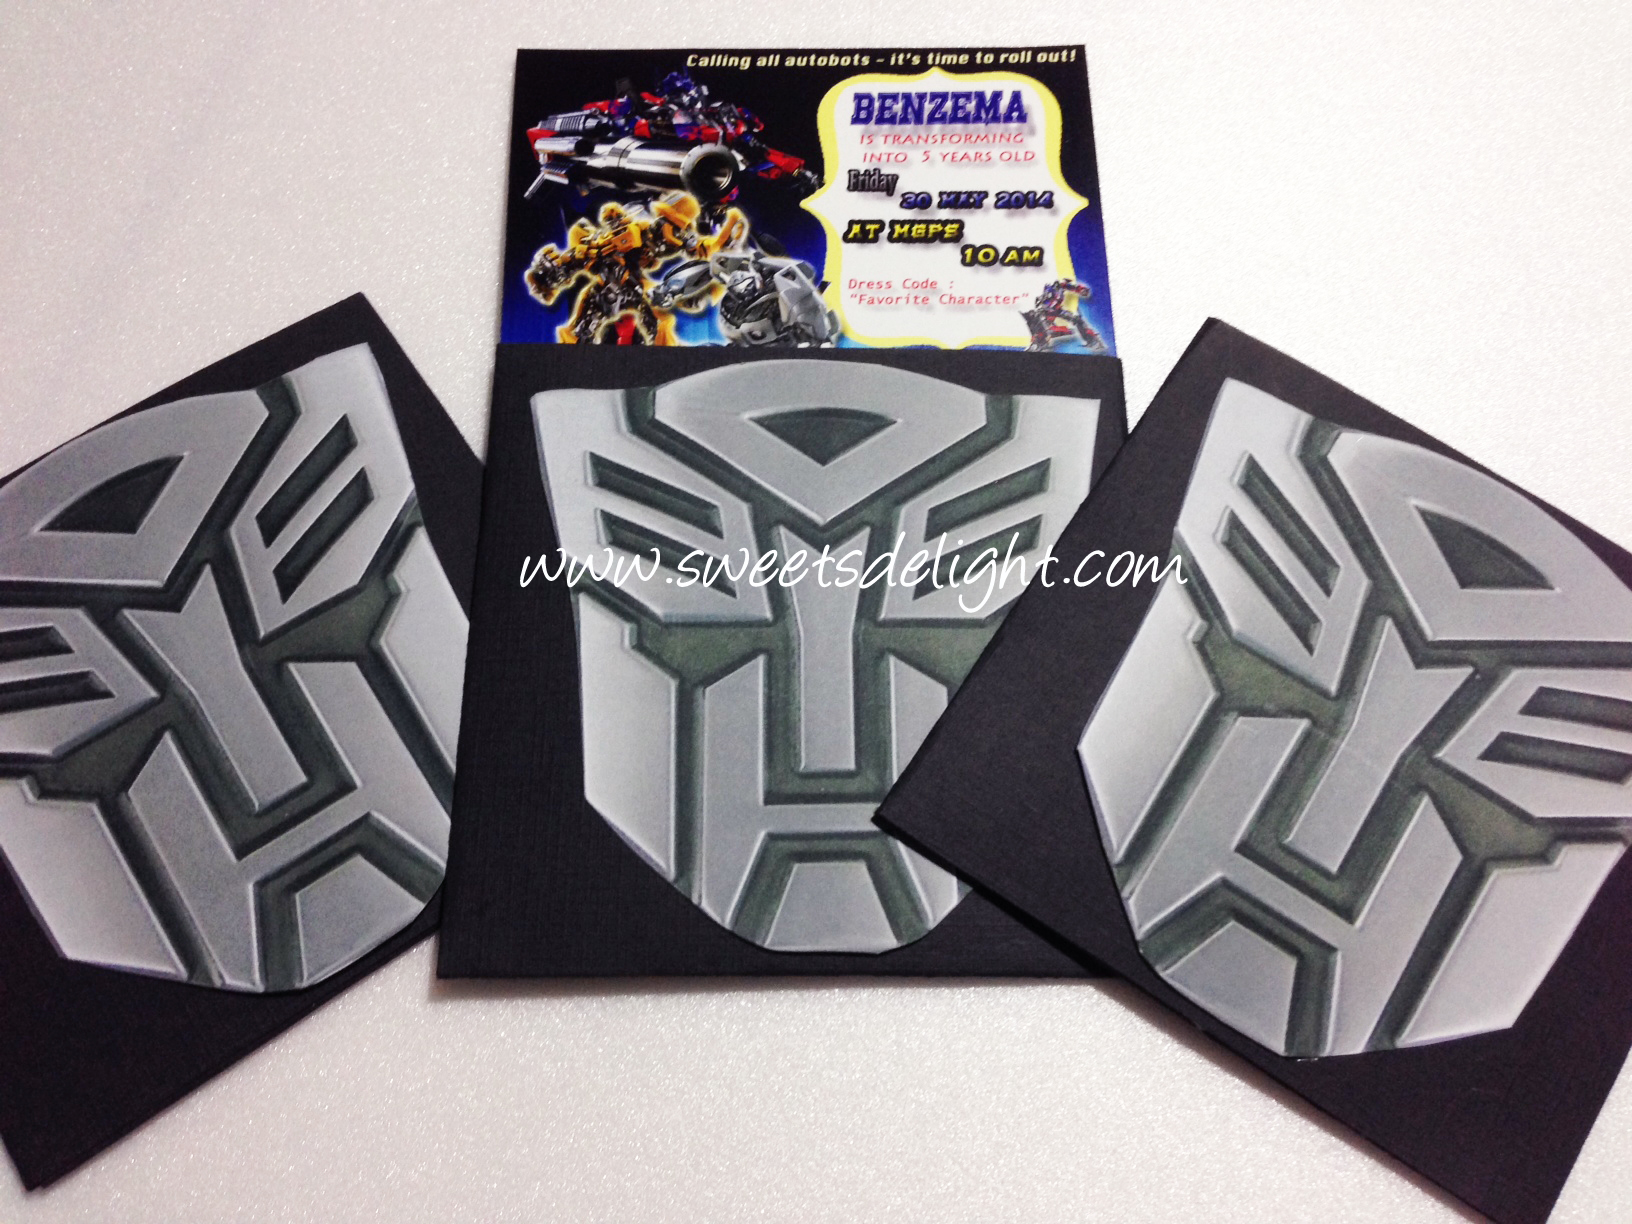 Transformers Invitation Benzema 5th Birthday Sweets Delight